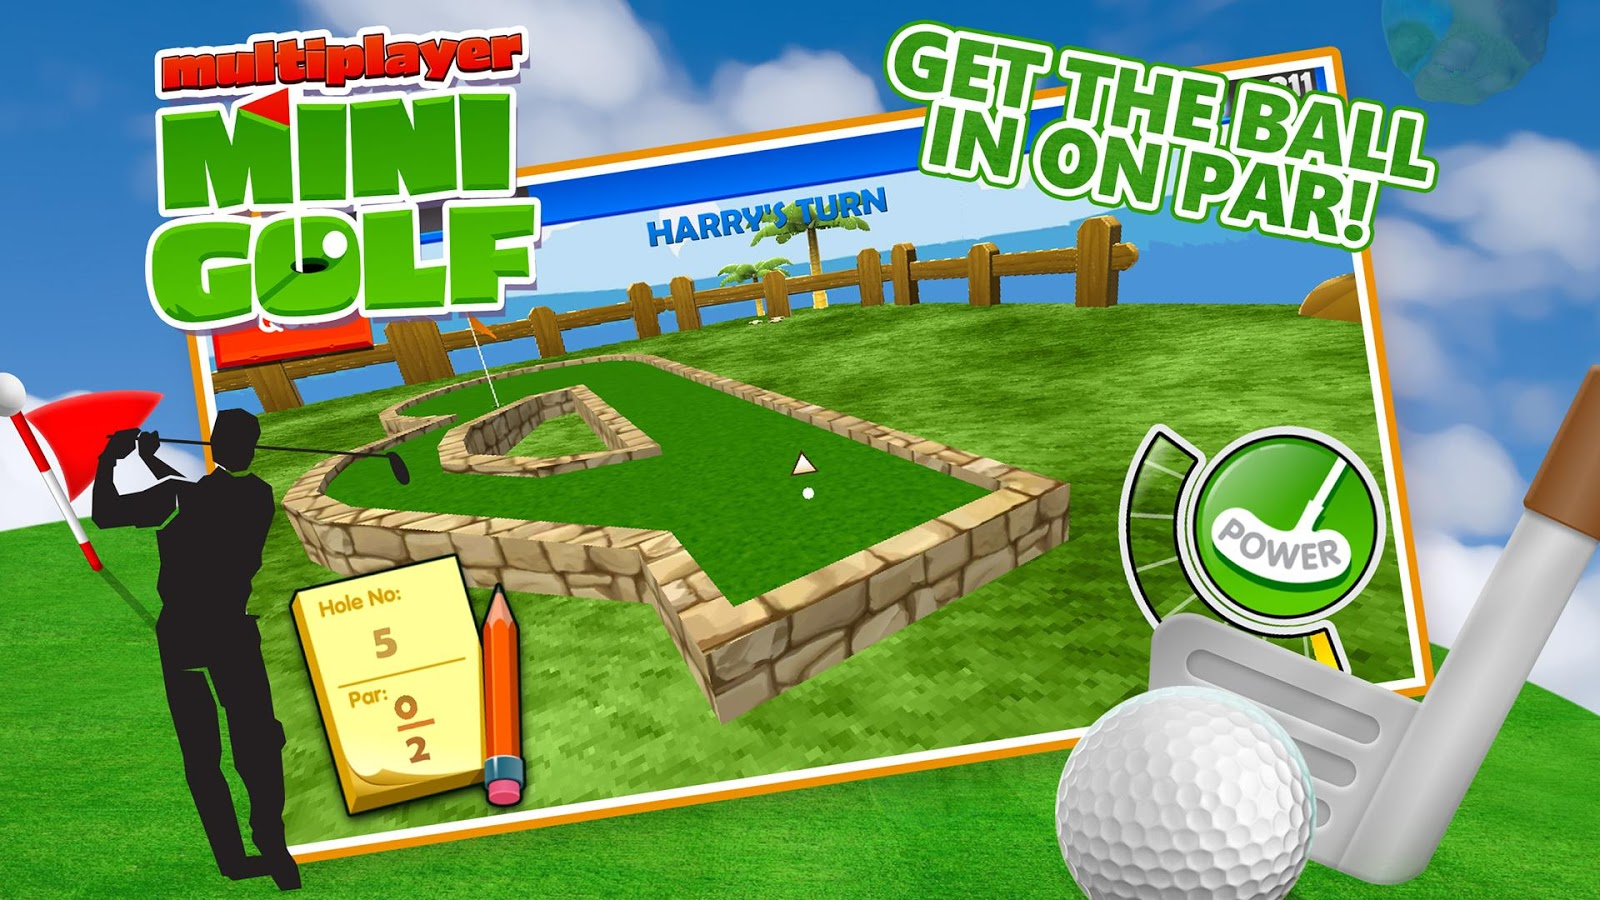 Golf Online Spielen Multiplayer